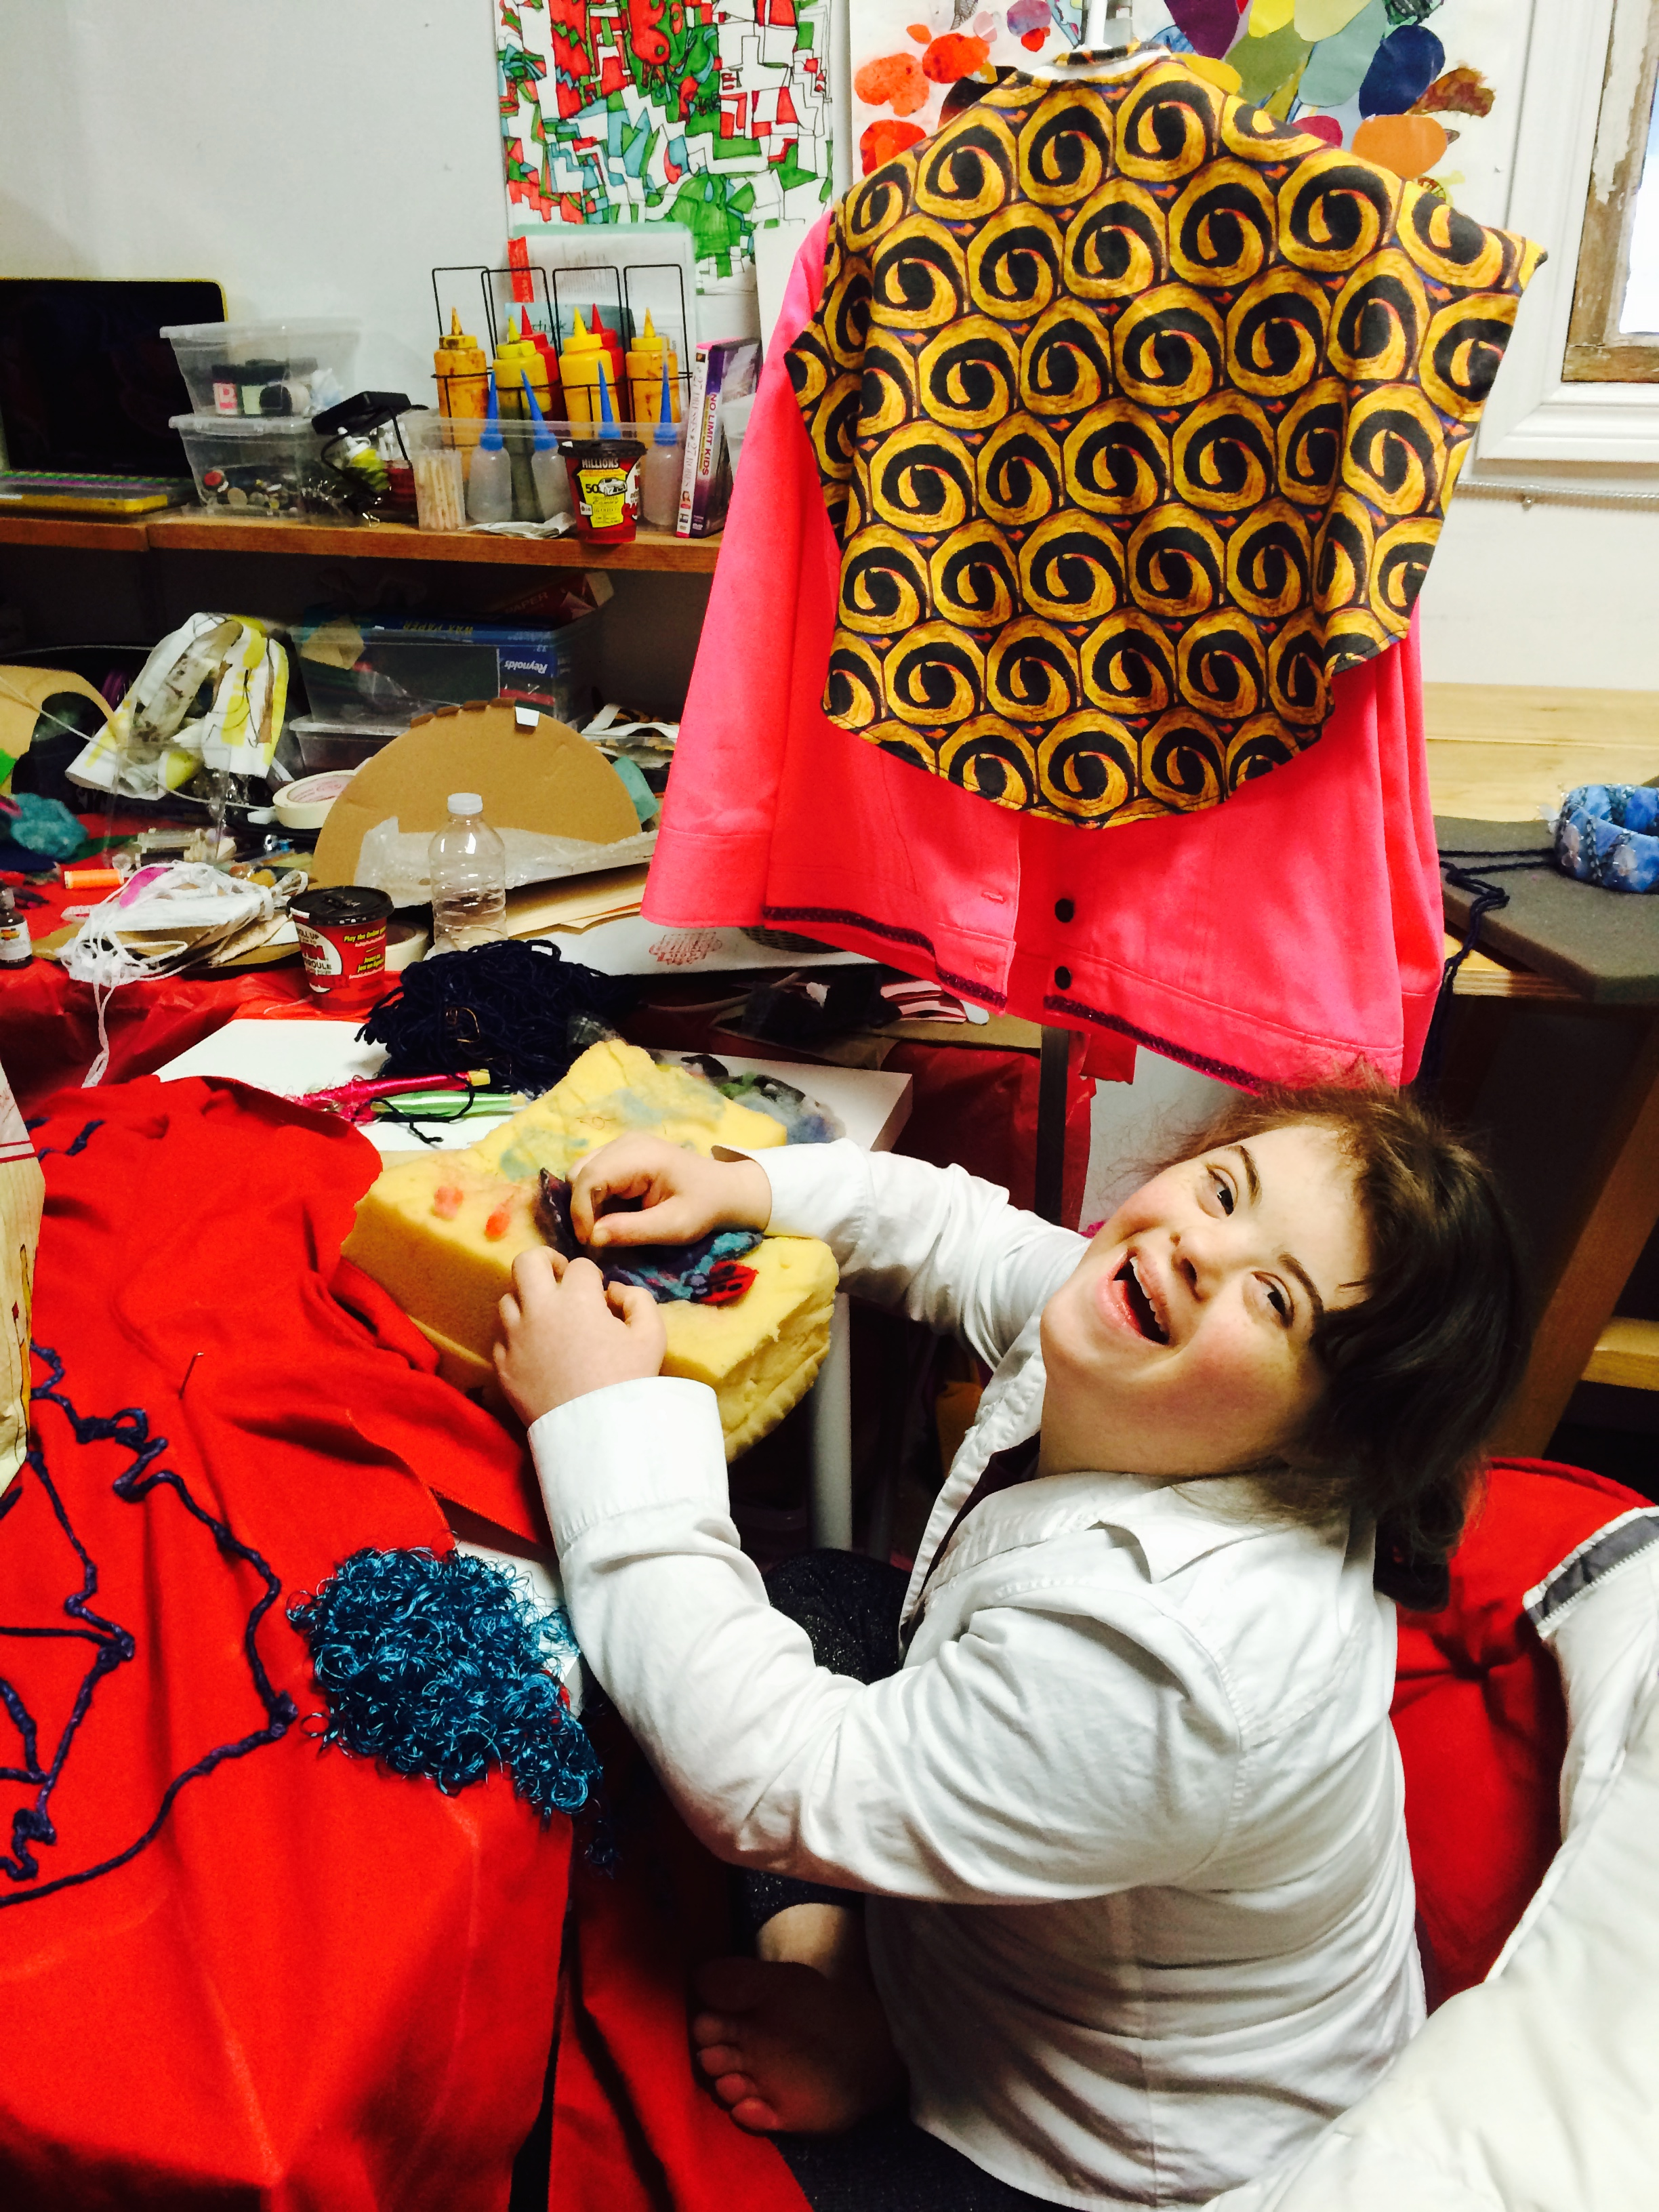 Just outside of Open Studio, one of our Wonder'neath artists diligently at work on Wearable Art Show fashion!